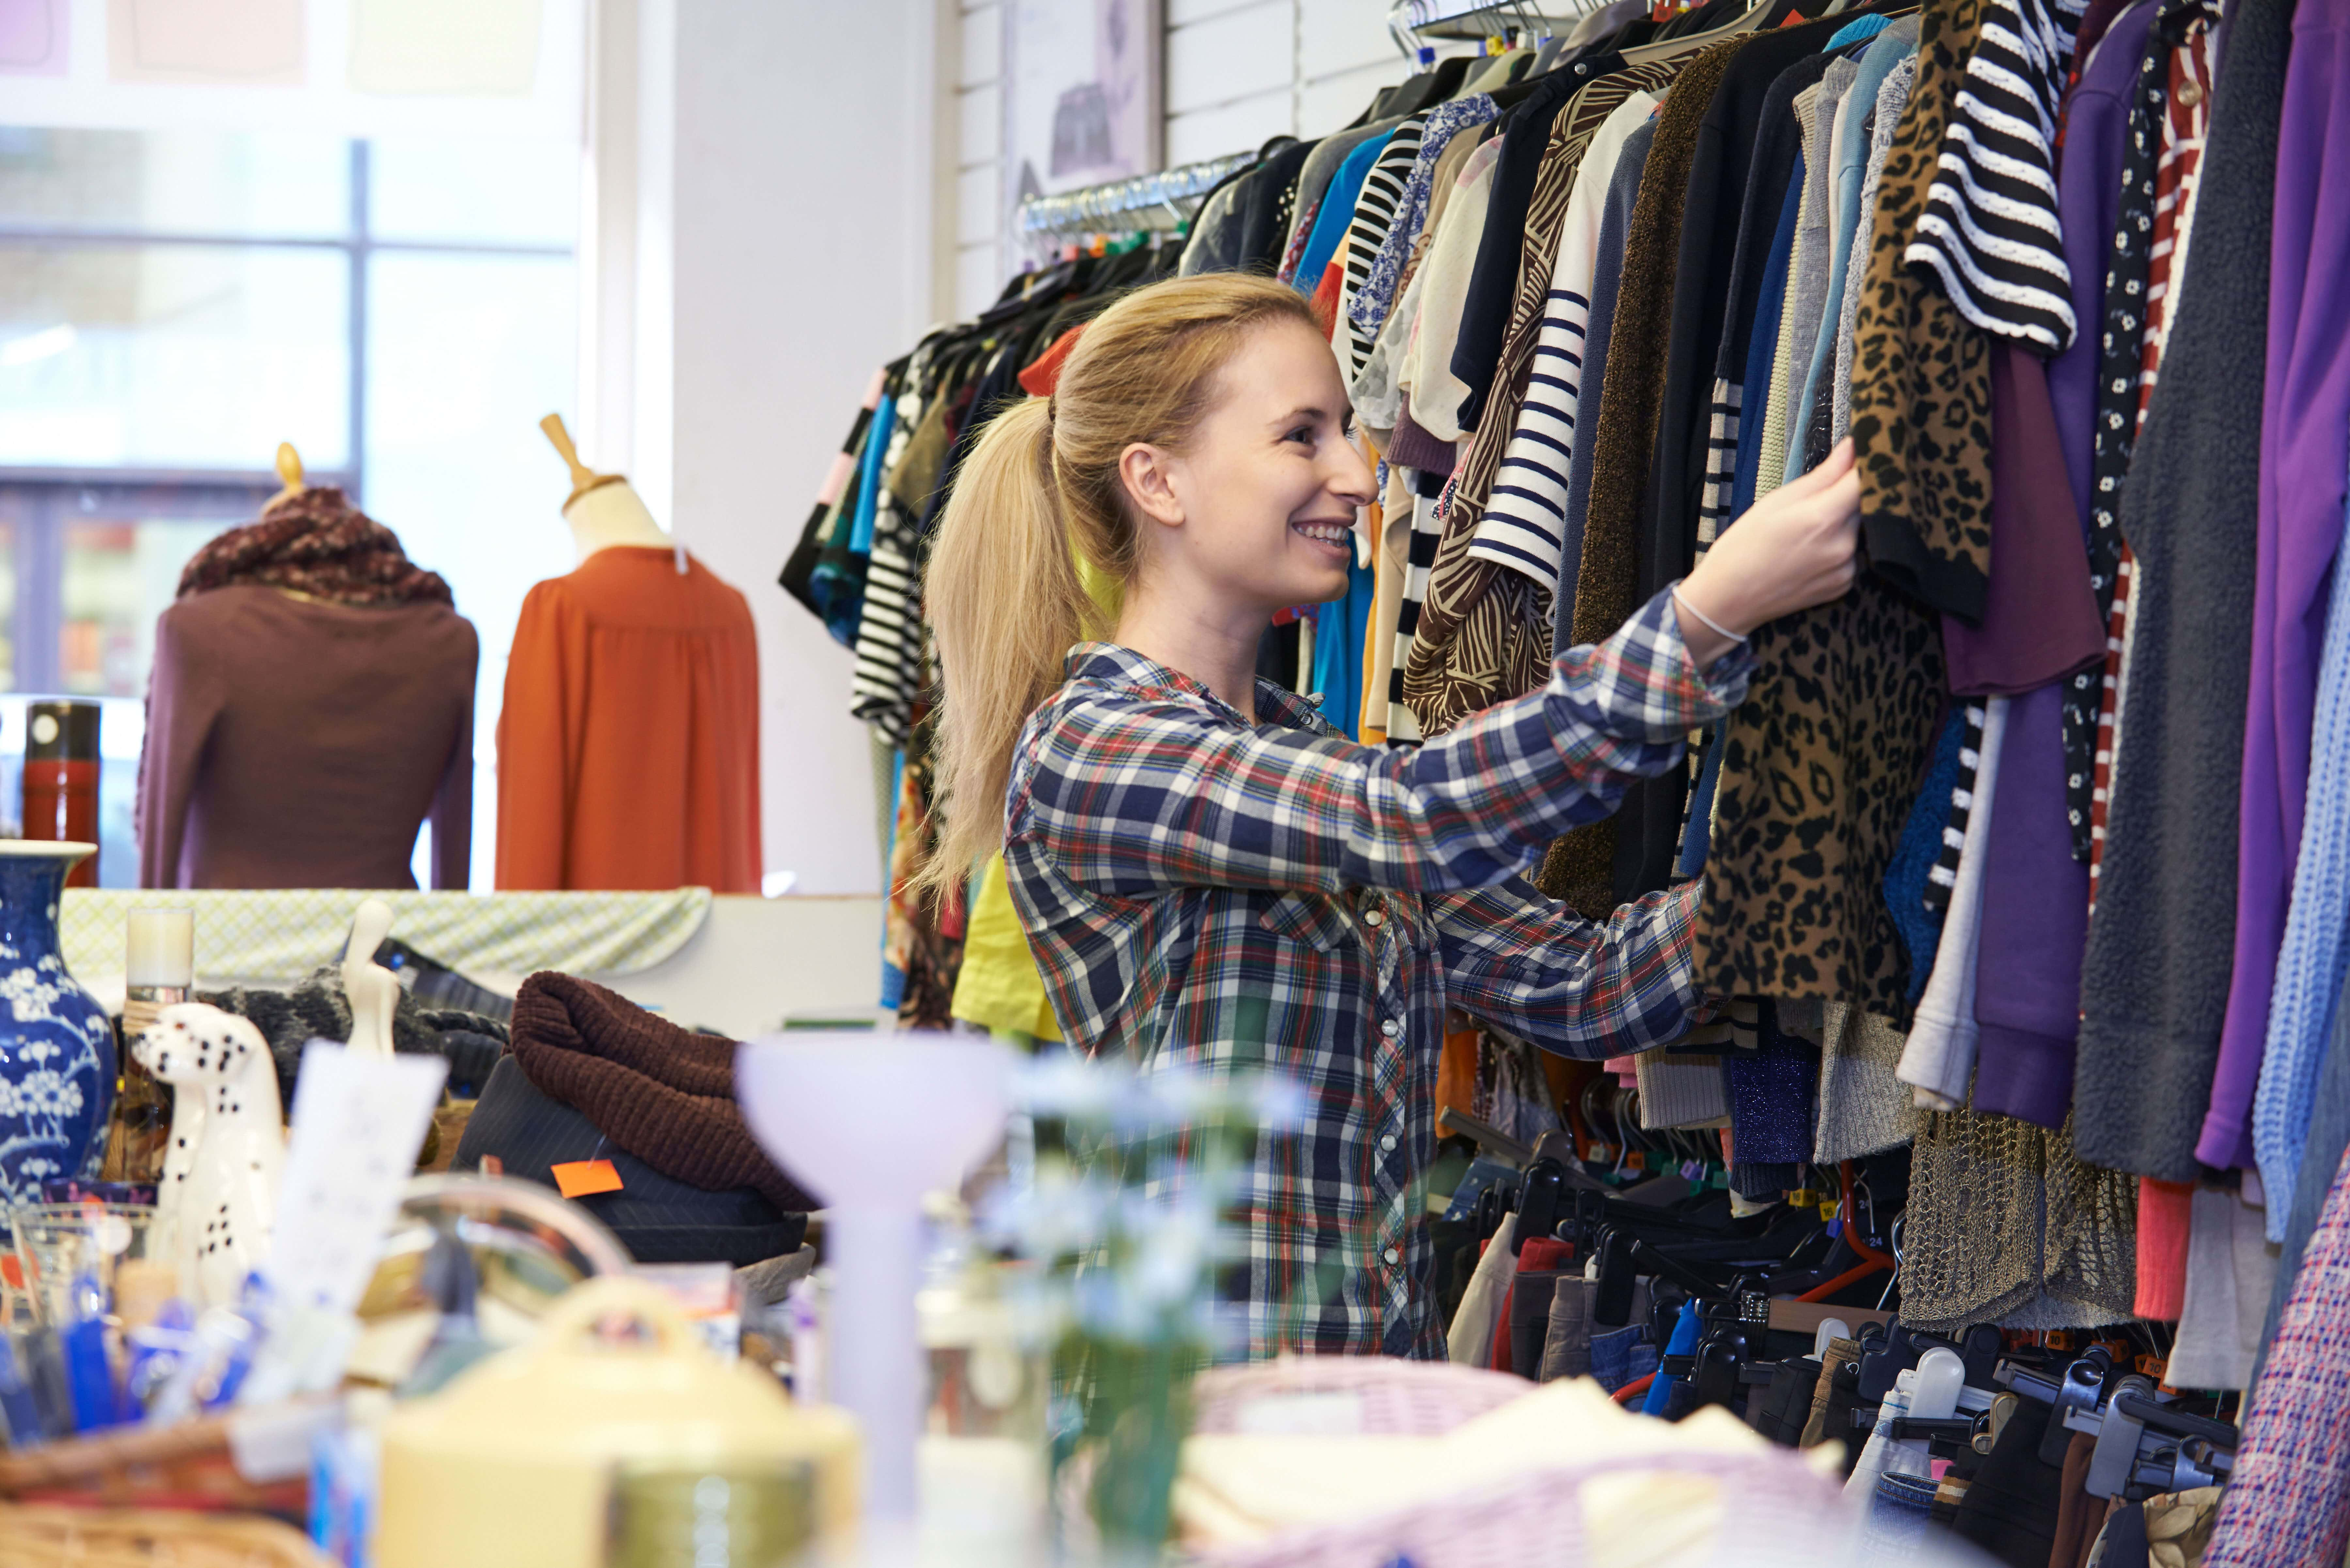 woman looking through clothing at a thrift store